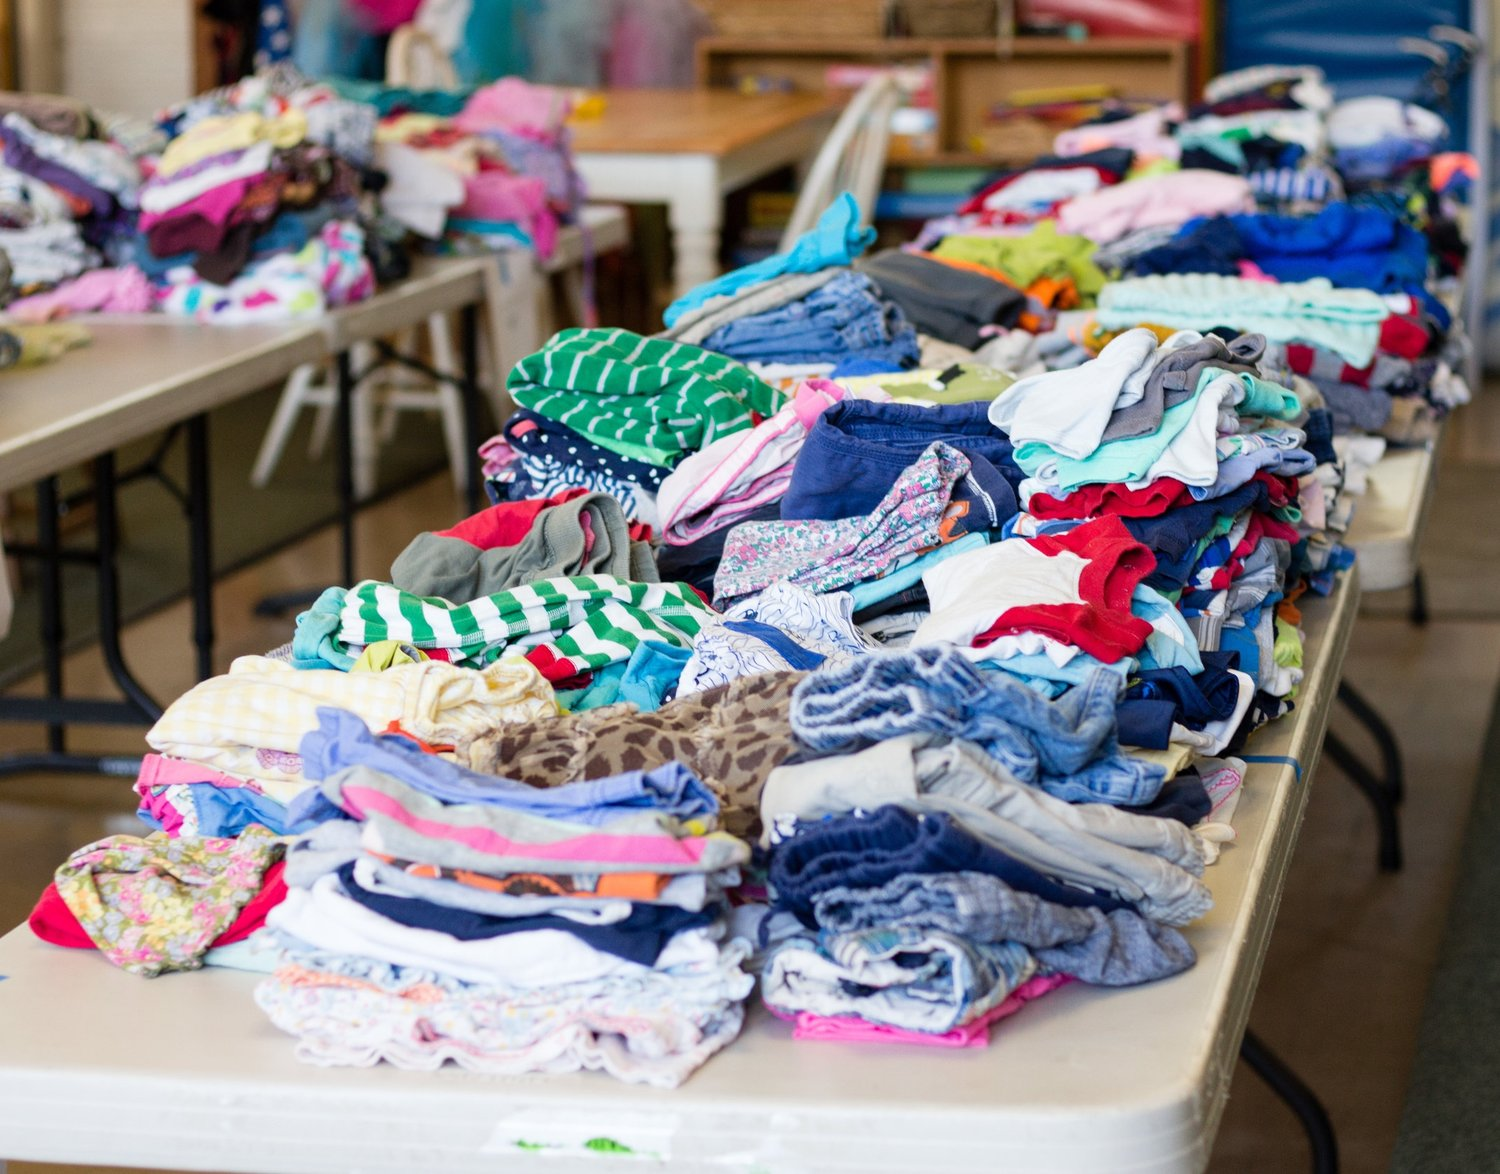 6c5c71437 Do you have a growing pile of outgrown children's clothes in decent  condition? Now that the weather is changing, are you finding that your  child actually ...